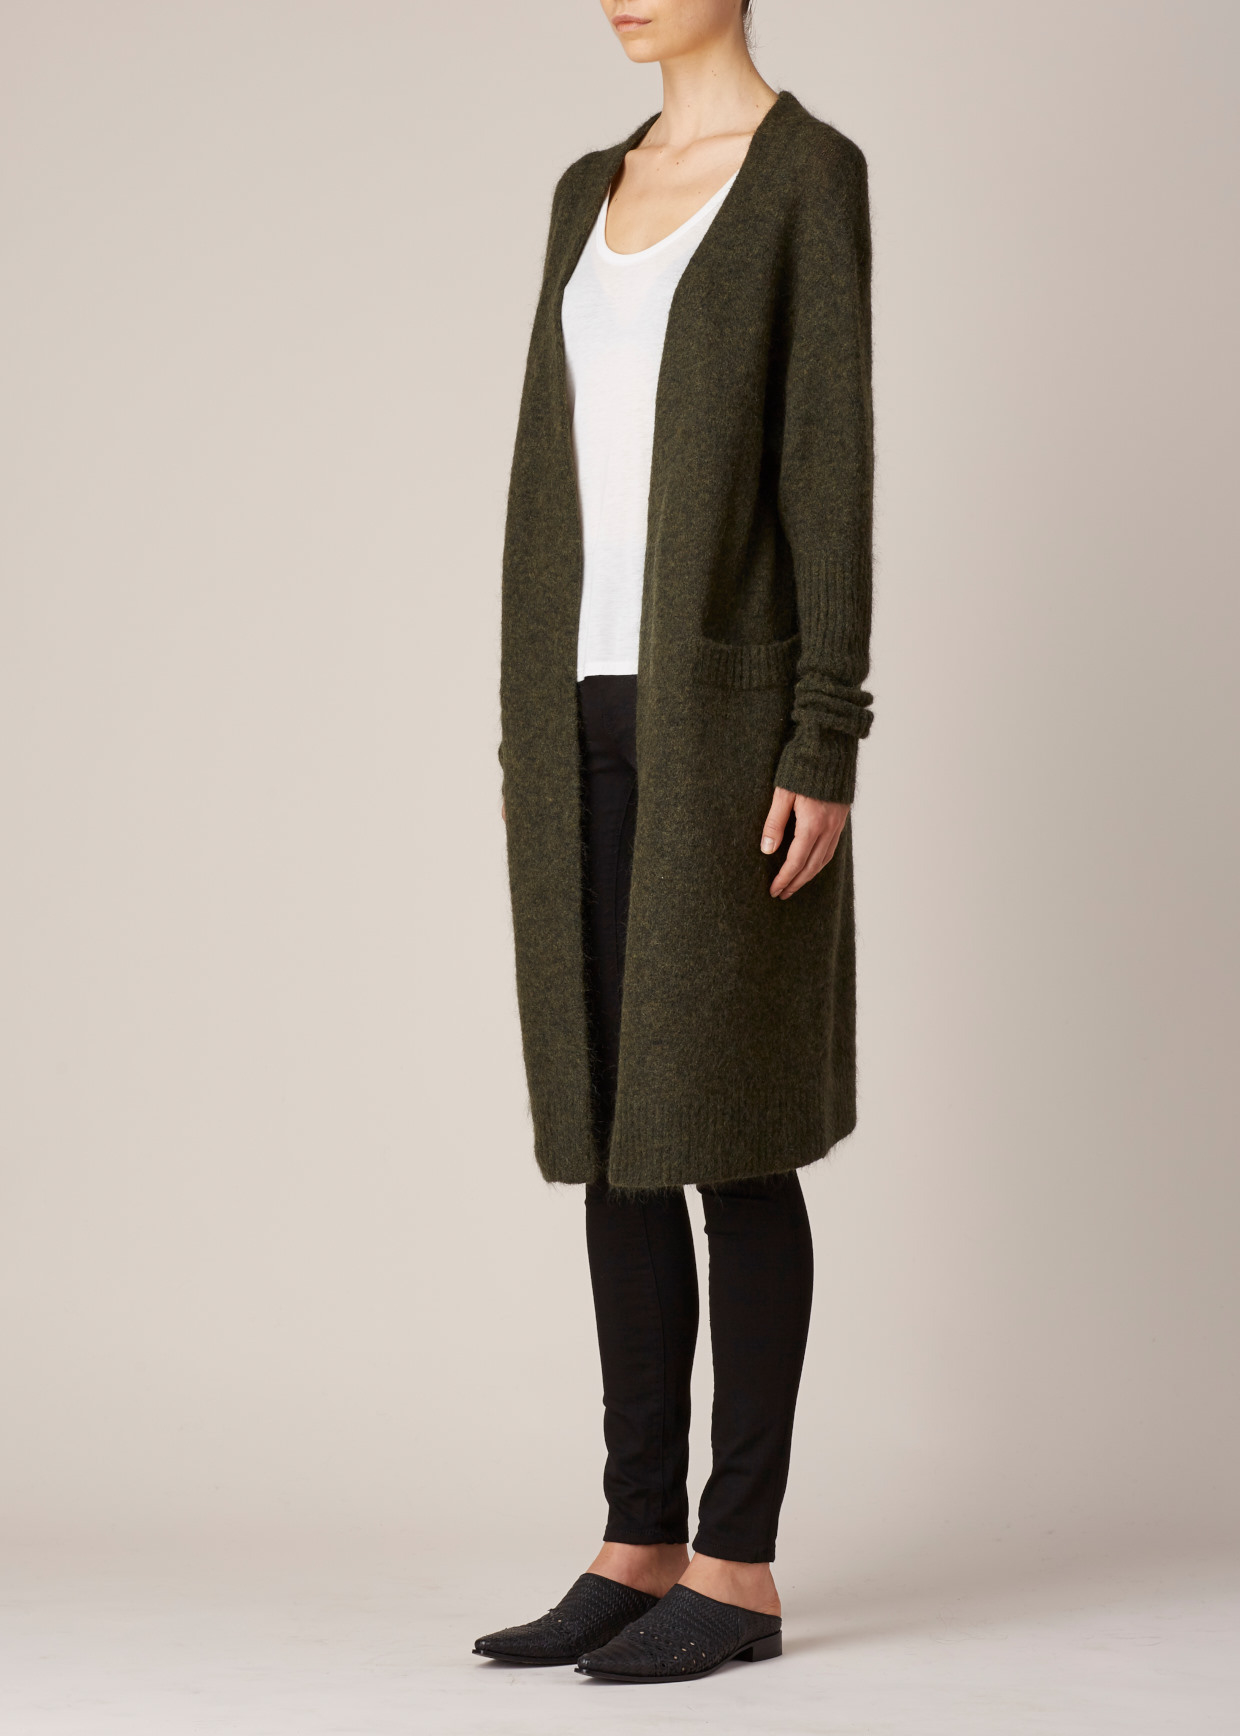 Acne studios Military Green Raya Mohair Long Cardigan in Green | Lyst